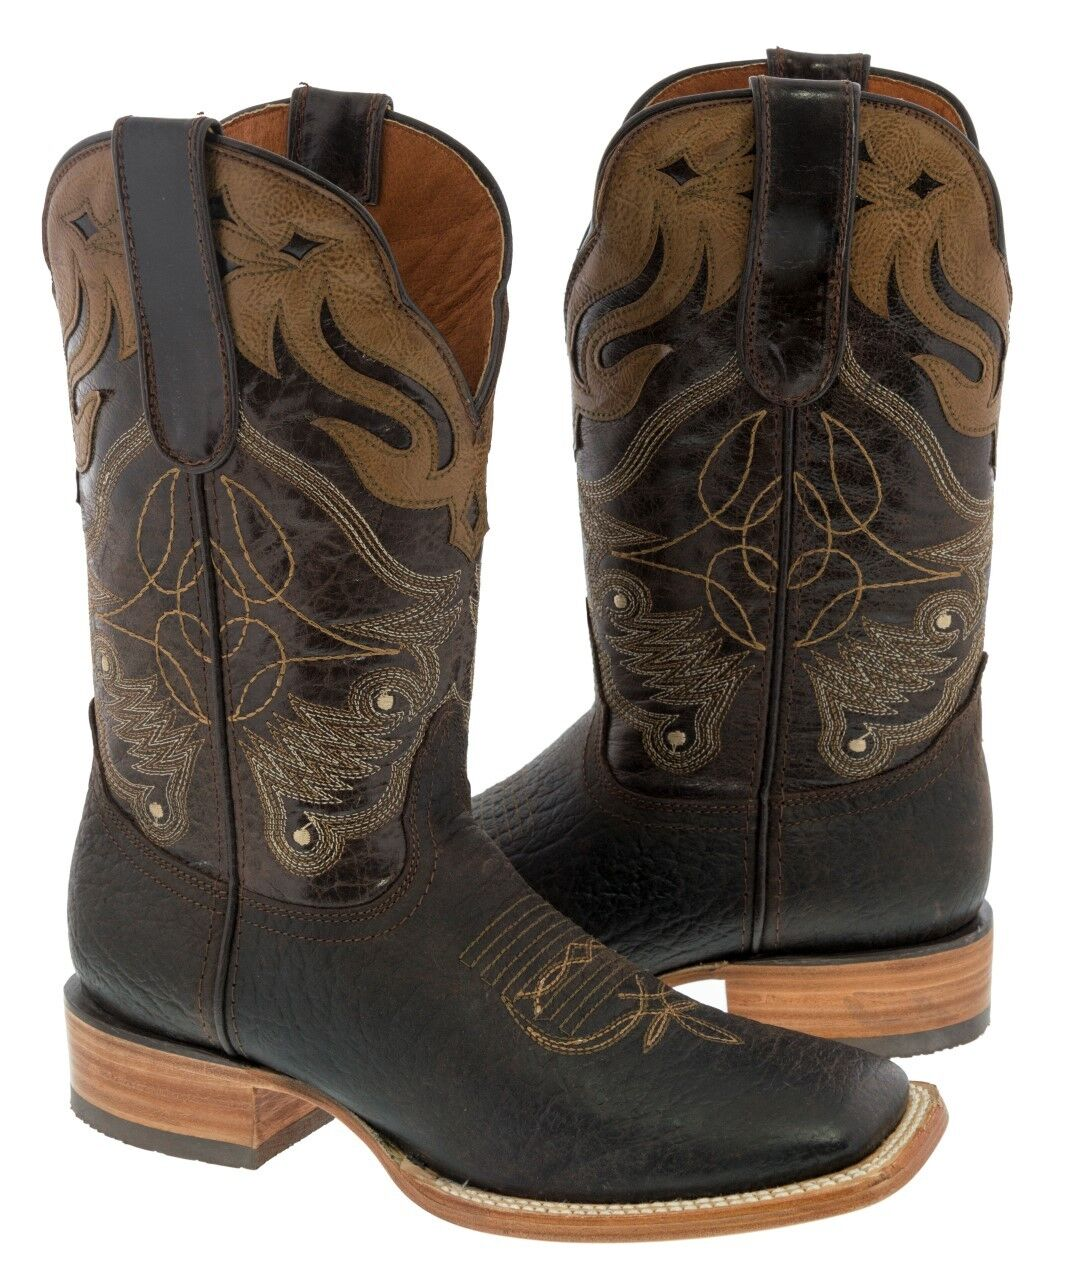 Mens Brown Design Light Overlay Genuine Leather Cowboy Boots Rodeo Square Toe